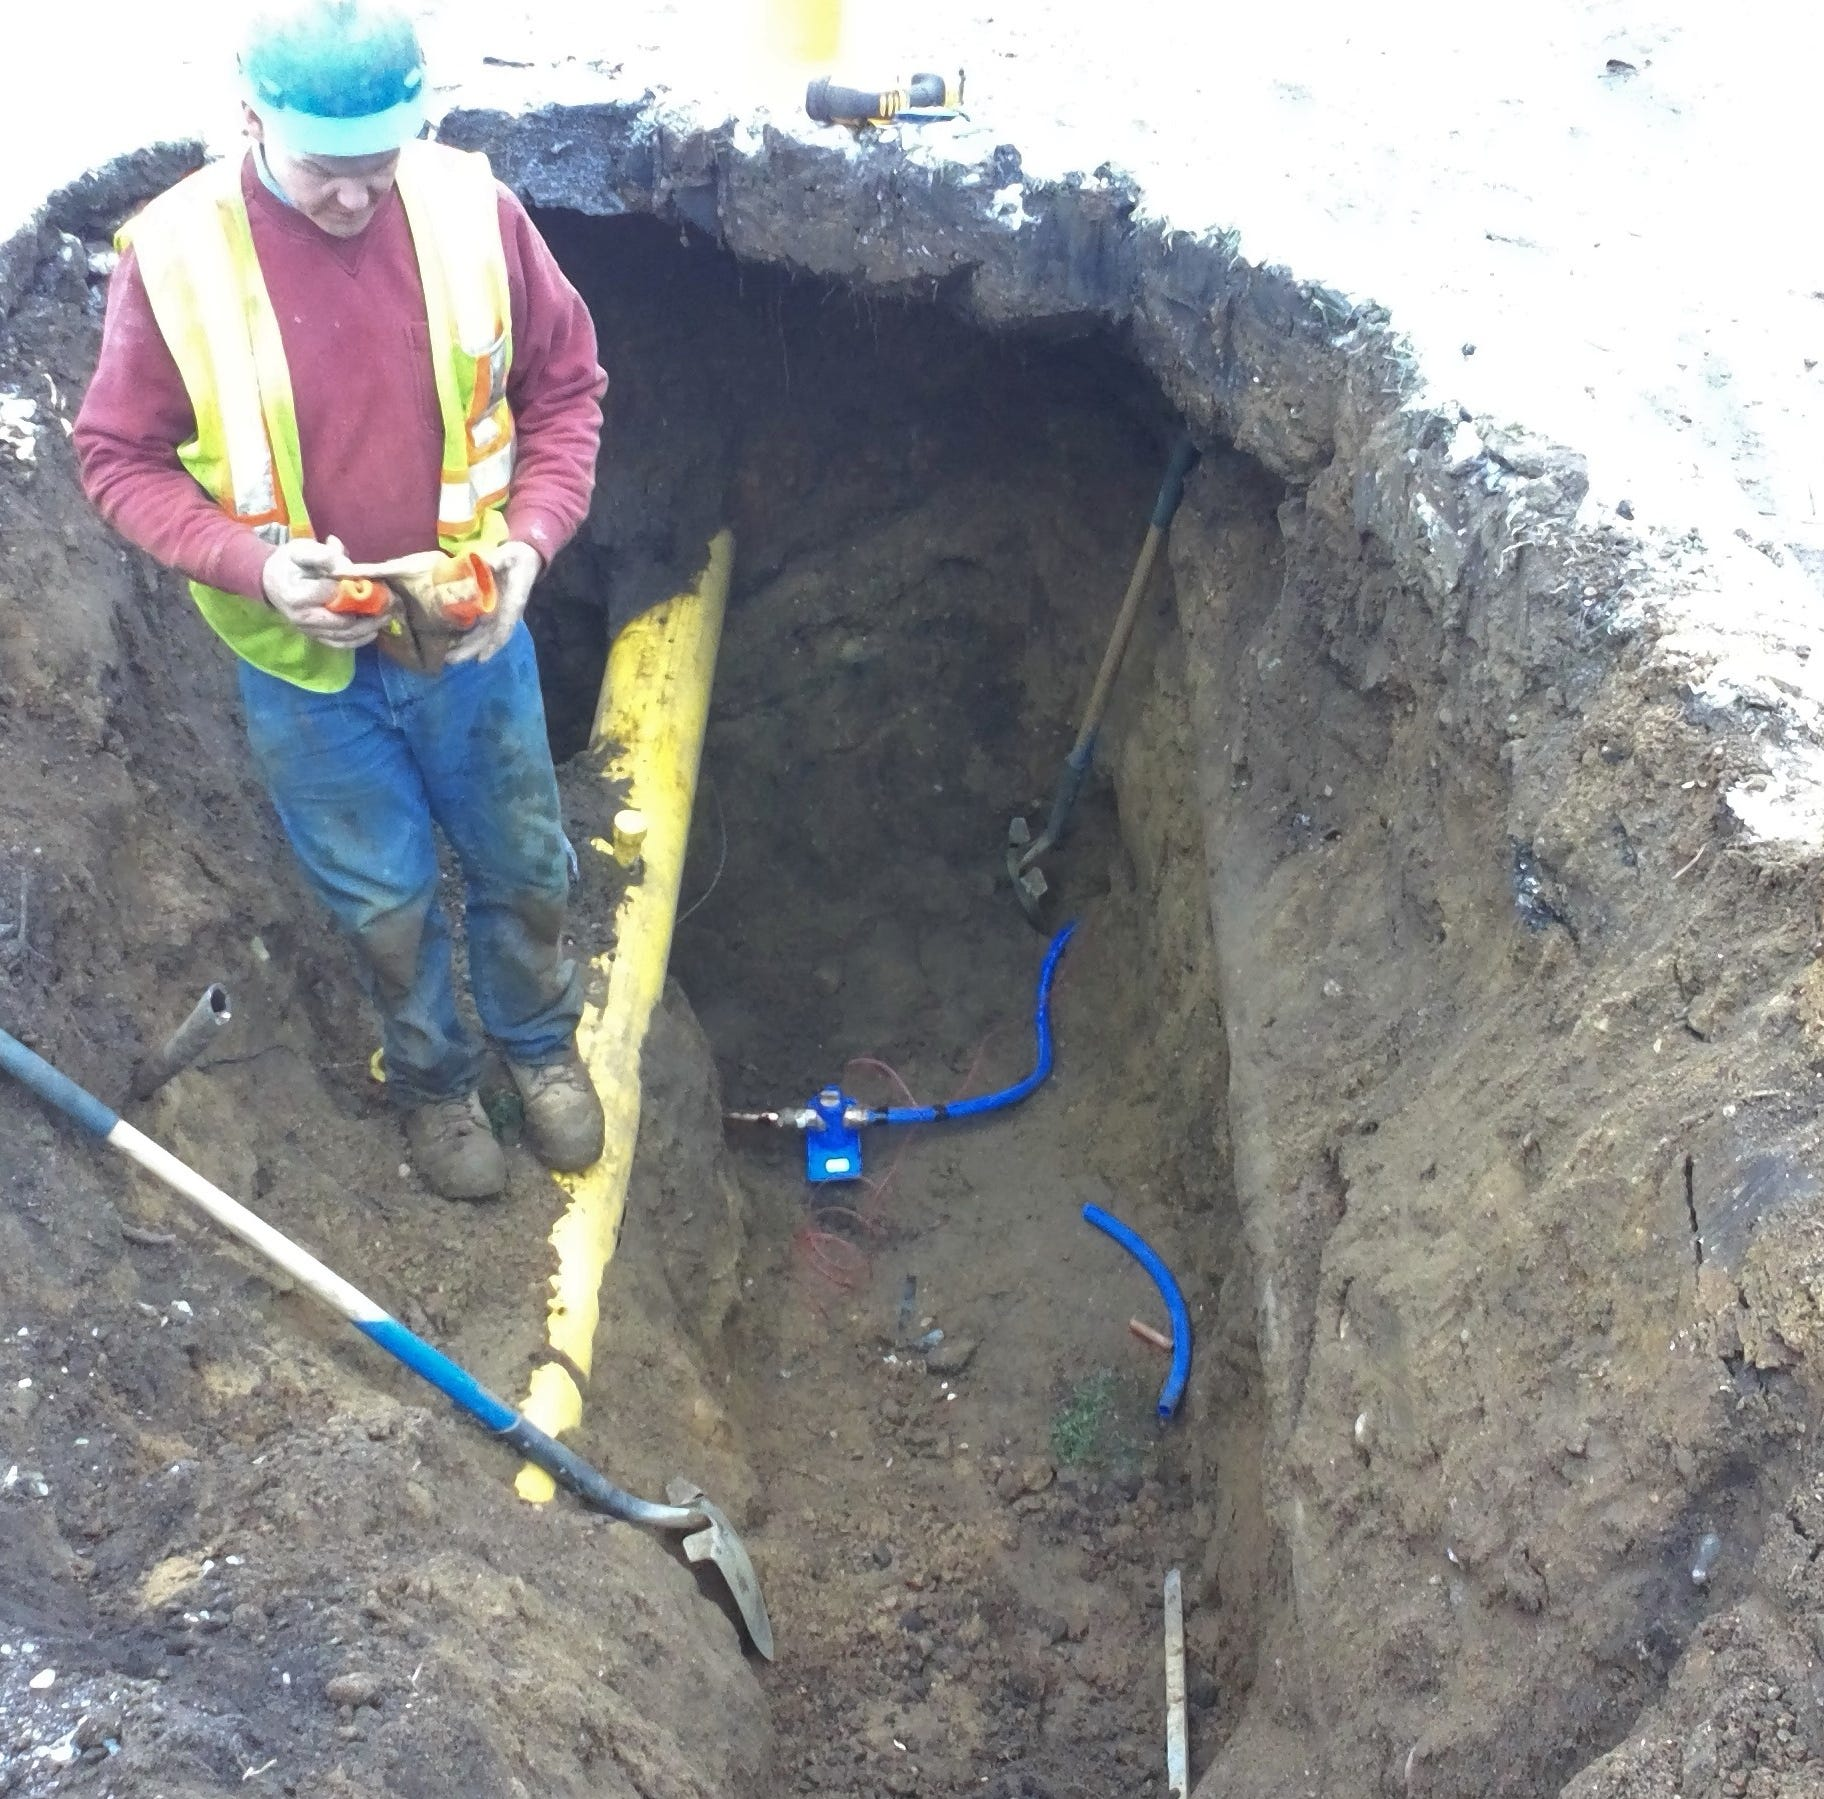 Battle Creek has 4,600 lead water service lines and 20 years to remove them